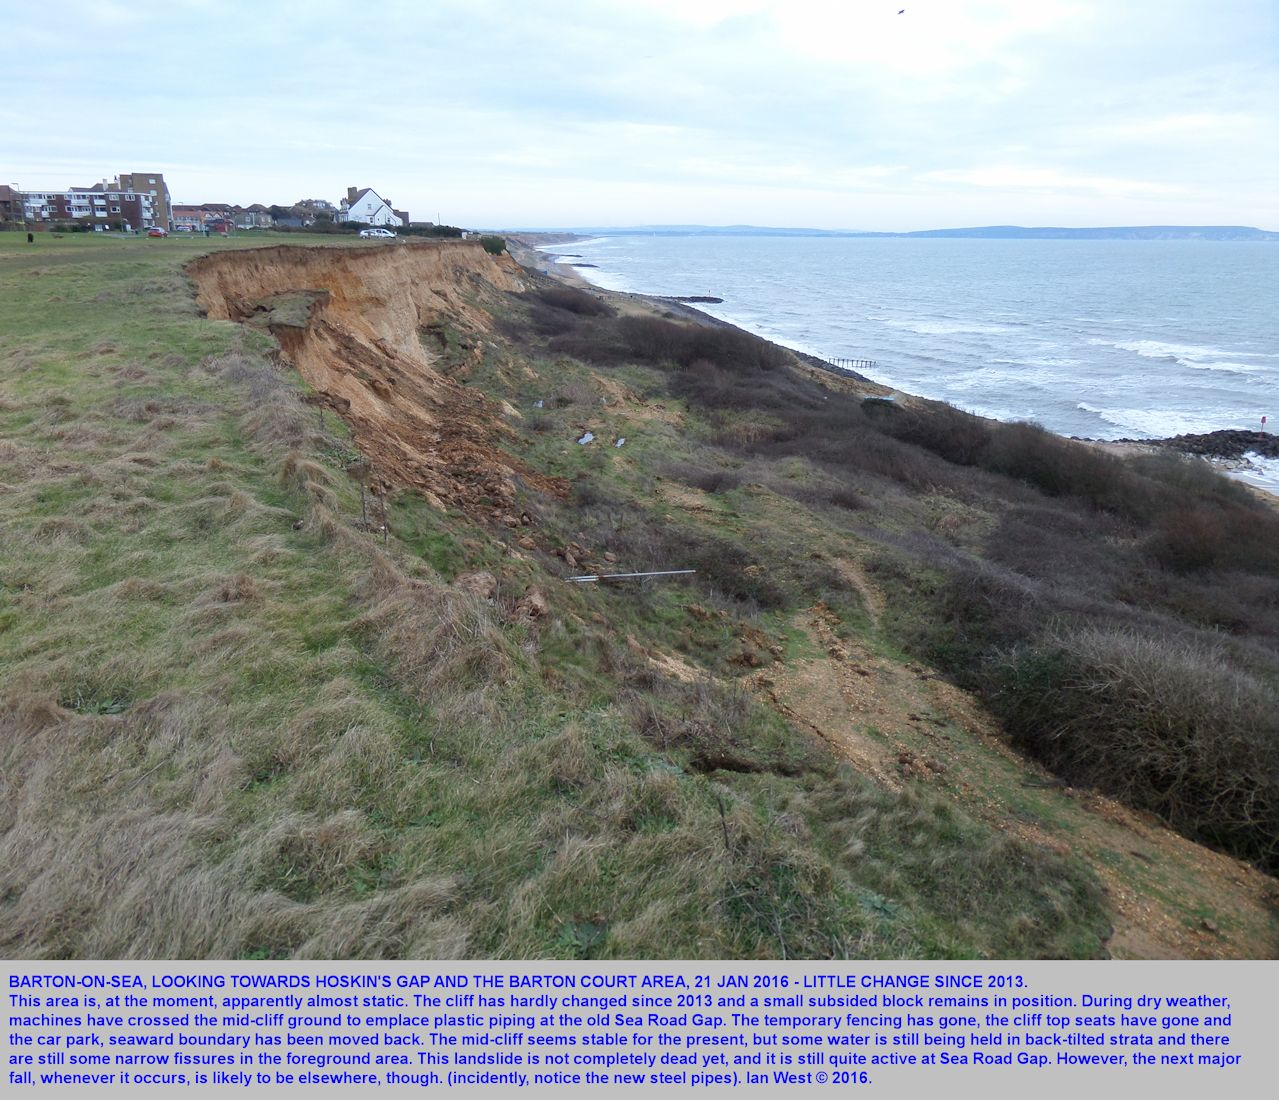 A broad view from the west of the very slow landslide area between the old Sea Road Access and Hoskin's Gap, Barton-on-Sea, Hampshire, 21 January 2016